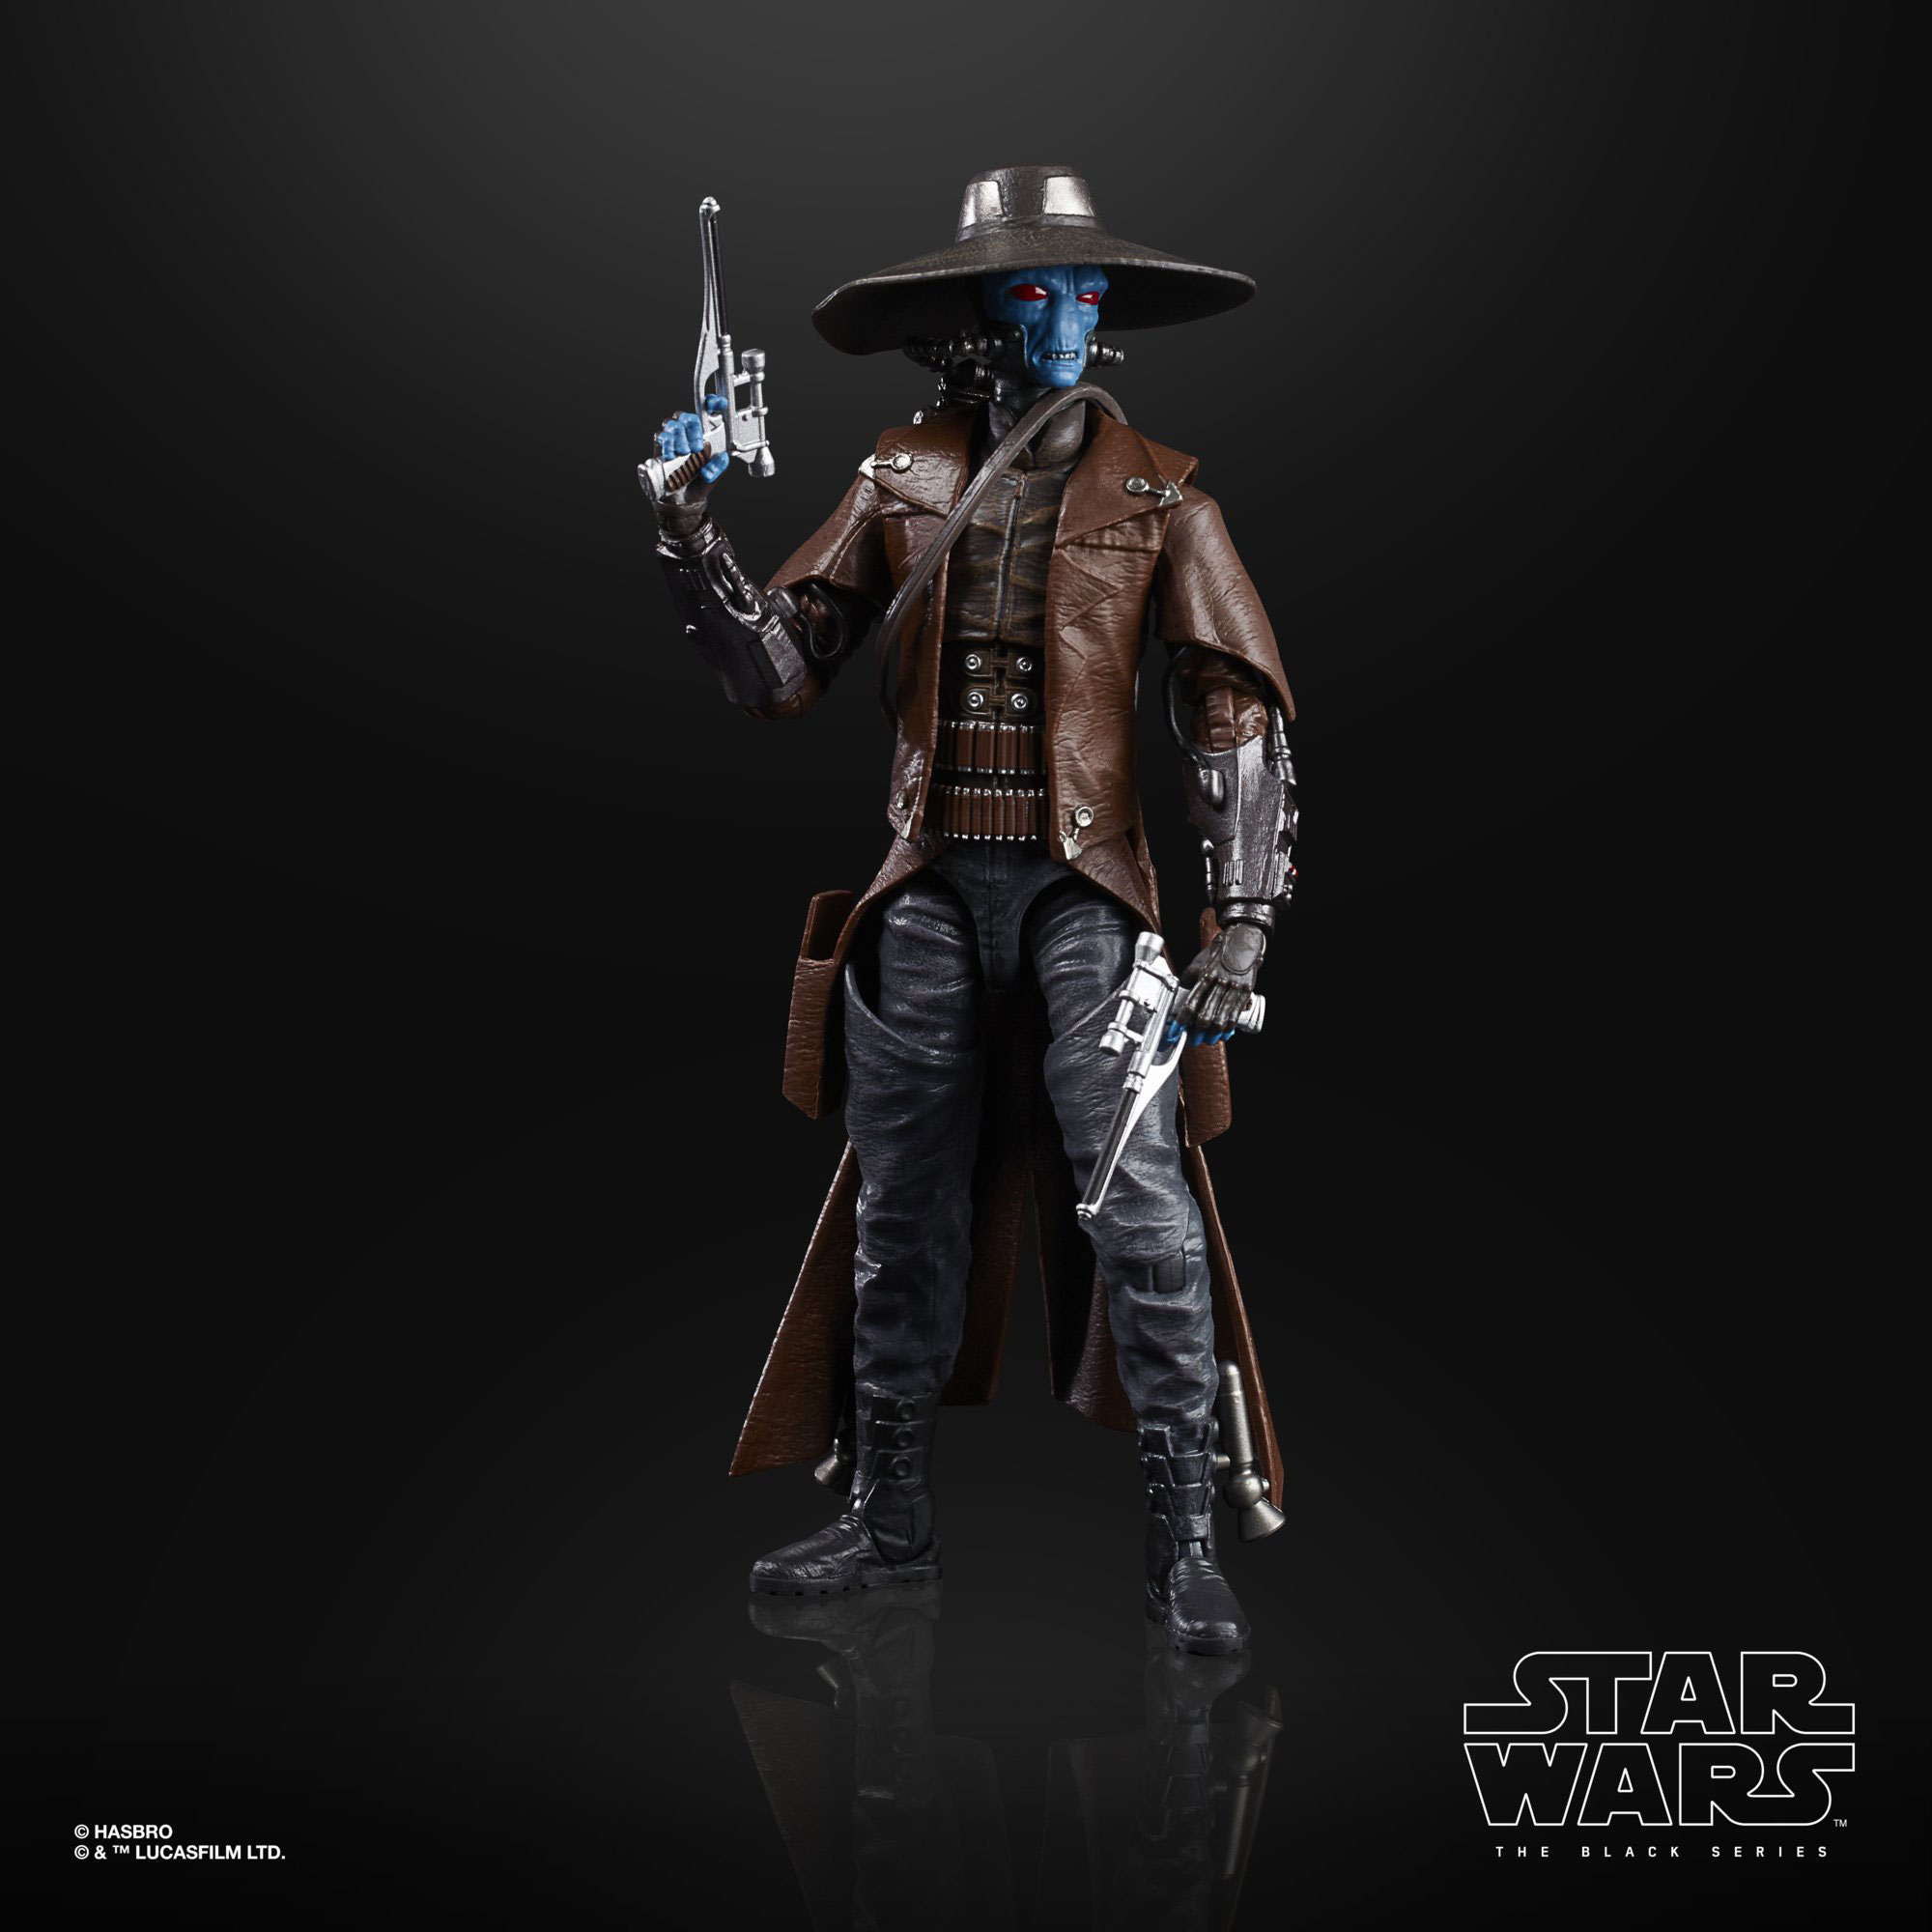 star-wars-black-series-cad-bane-action-figure-1